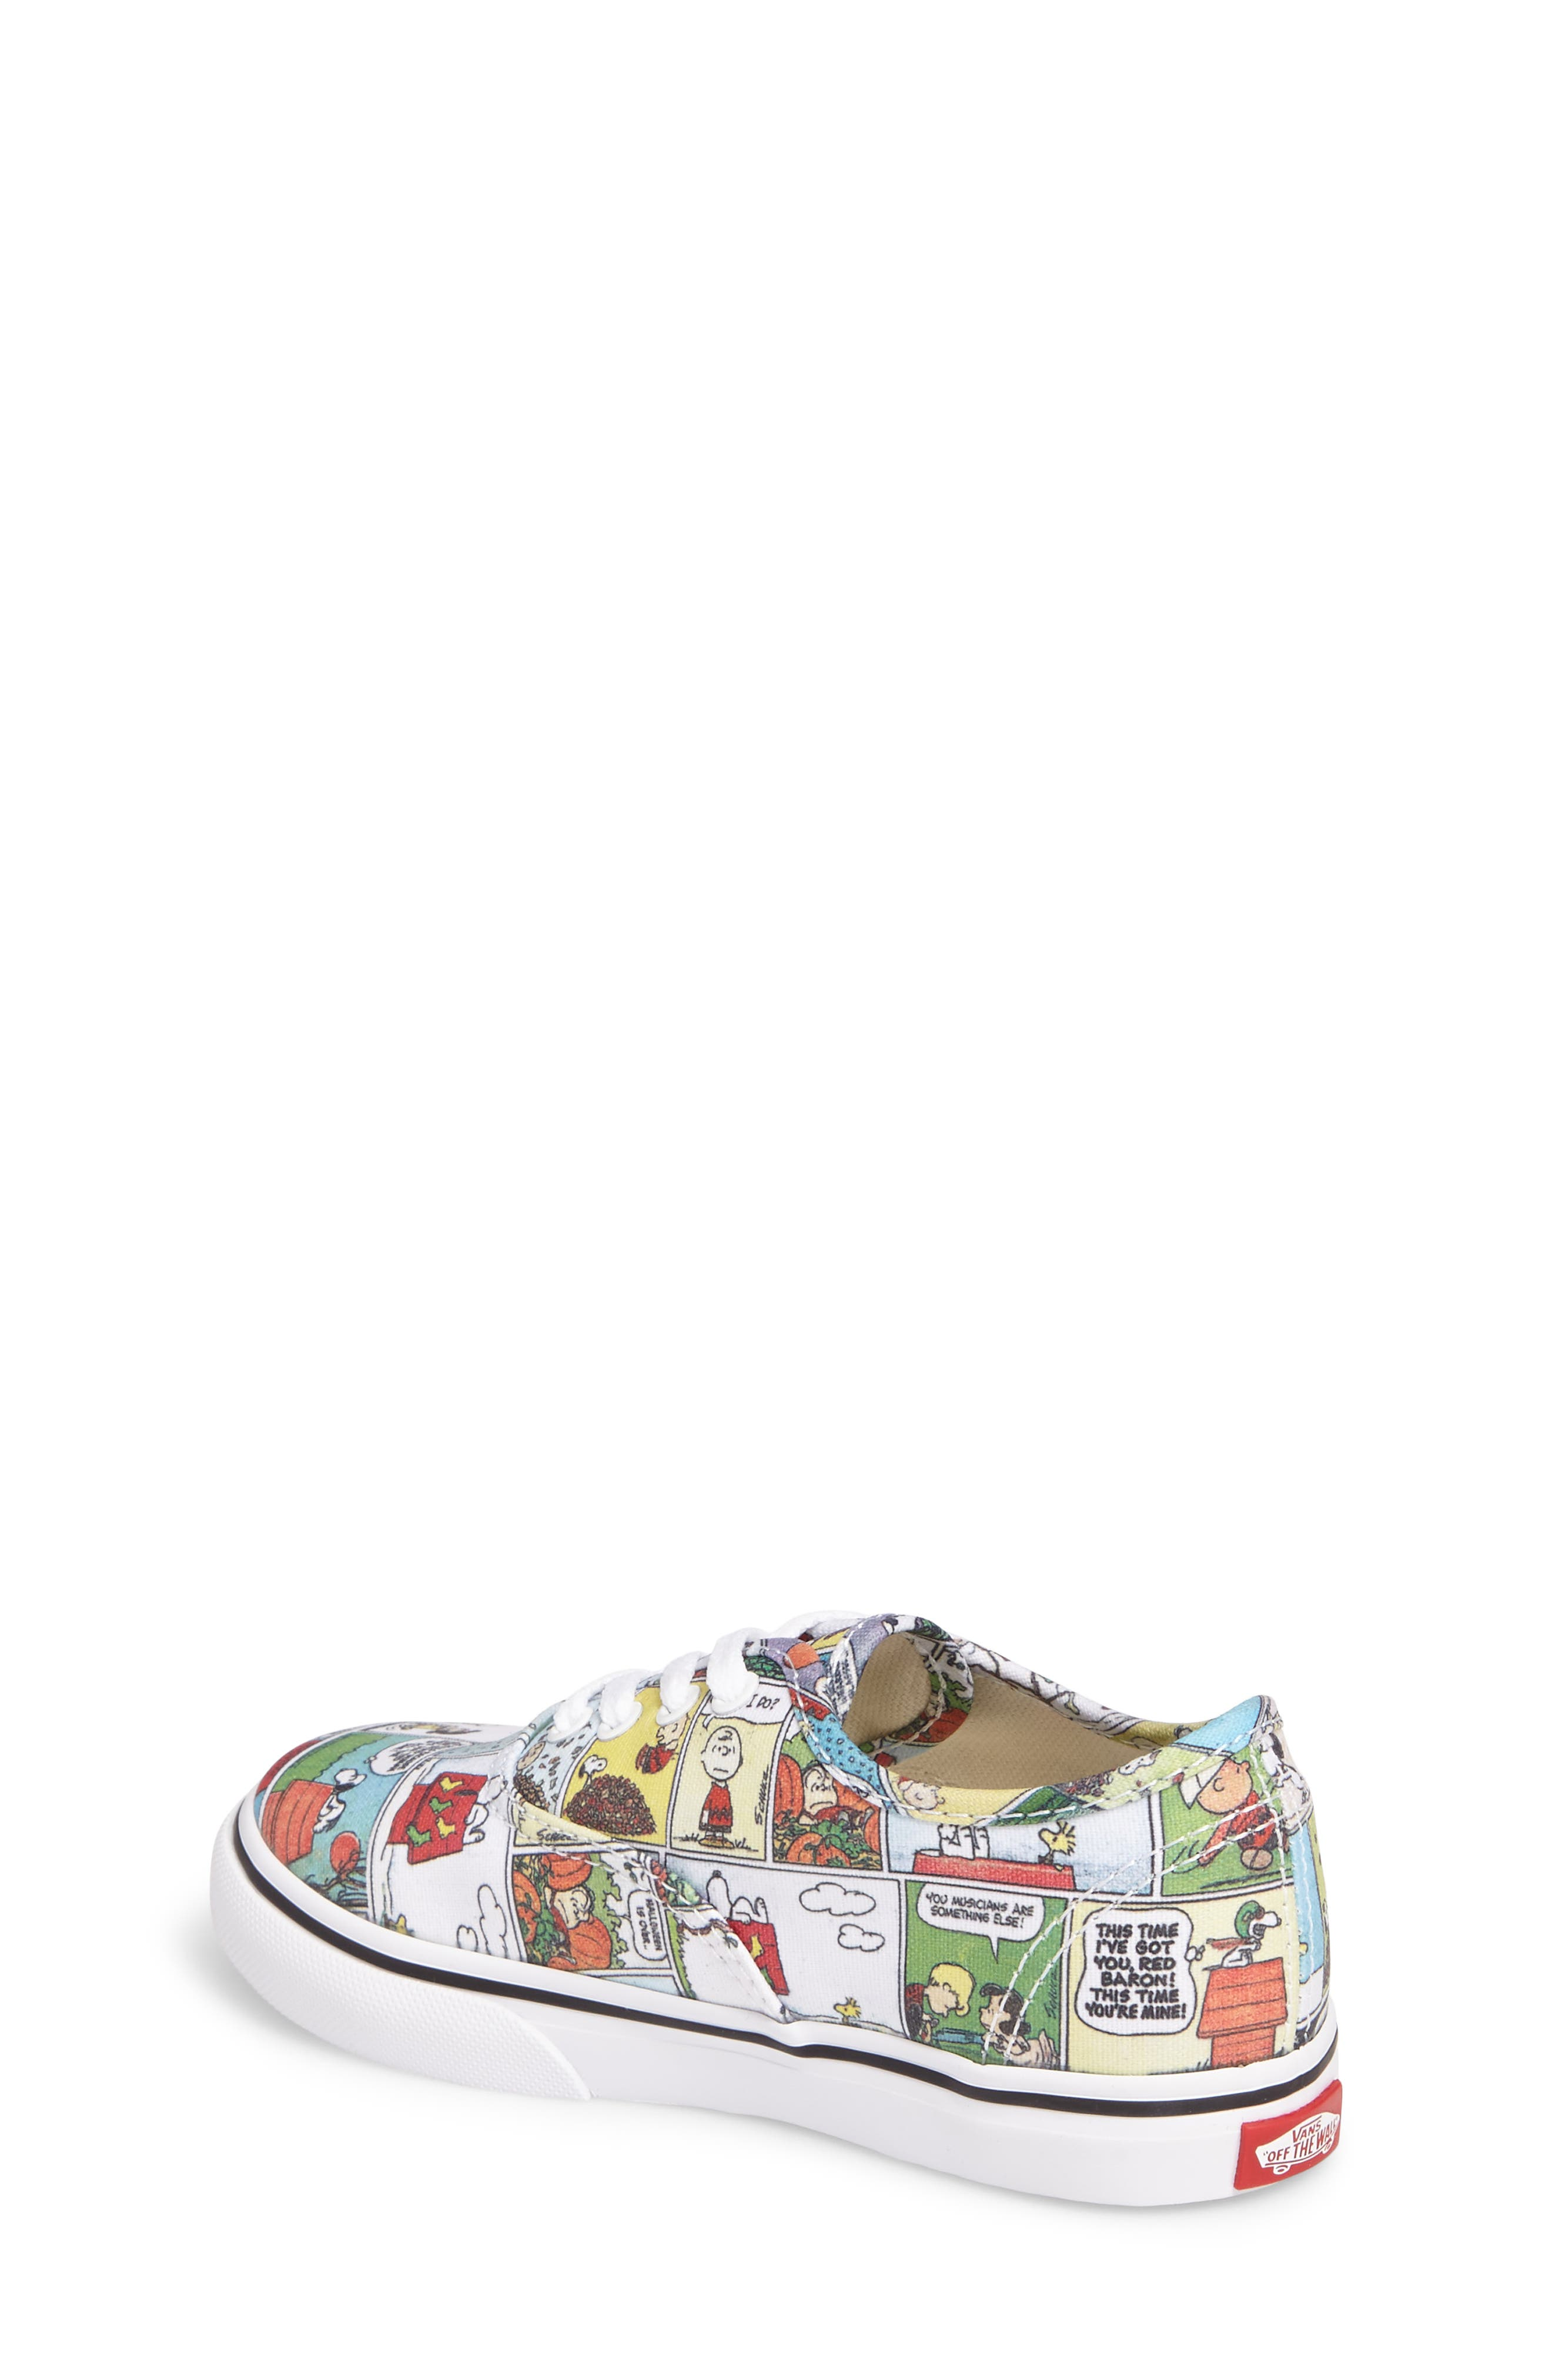 x Peanuts Authentic Low Top Sneaker,                             Alternate thumbnail 2, color,                             001